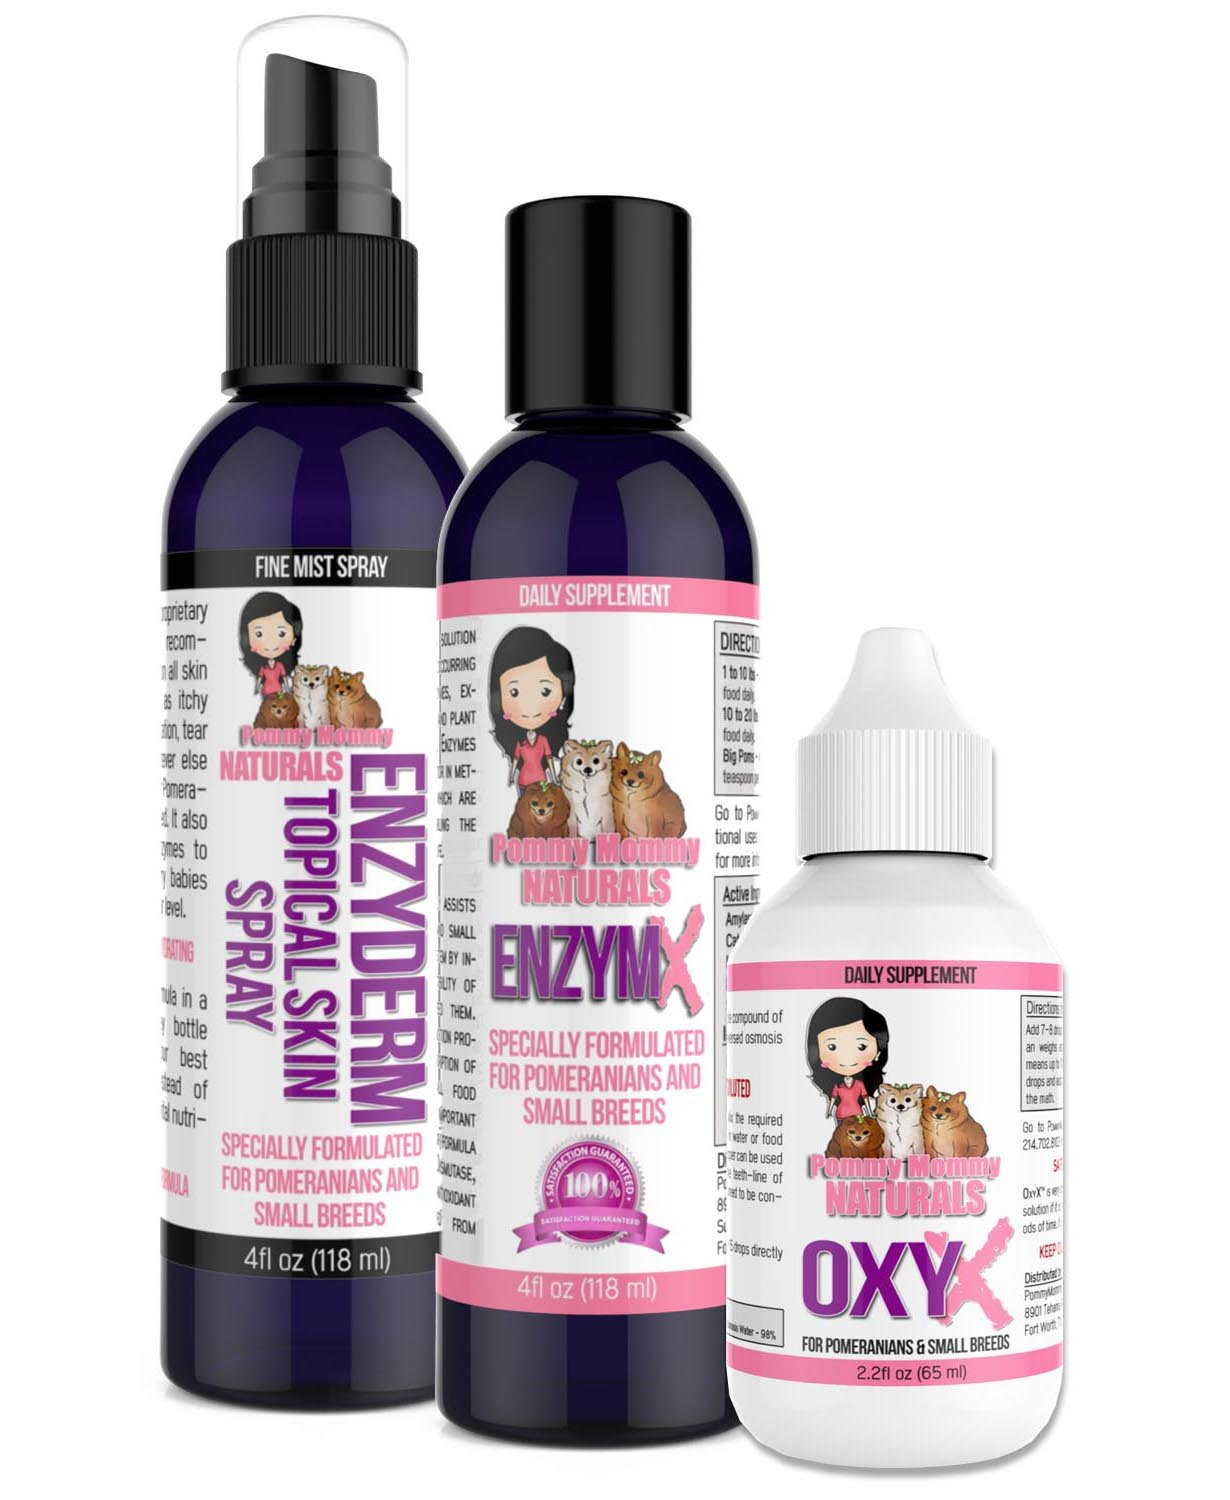 Pommy Mommy Naturals Skin PRO Pack - Our EZYDERM Anti-Itch Skin Spray, ENZYMX Antioxidant Enzyme Formula and OXYX Alkaline/PH Booster - to Help with All Your Dog's Skin Issues by Pommy Mommy Naturals